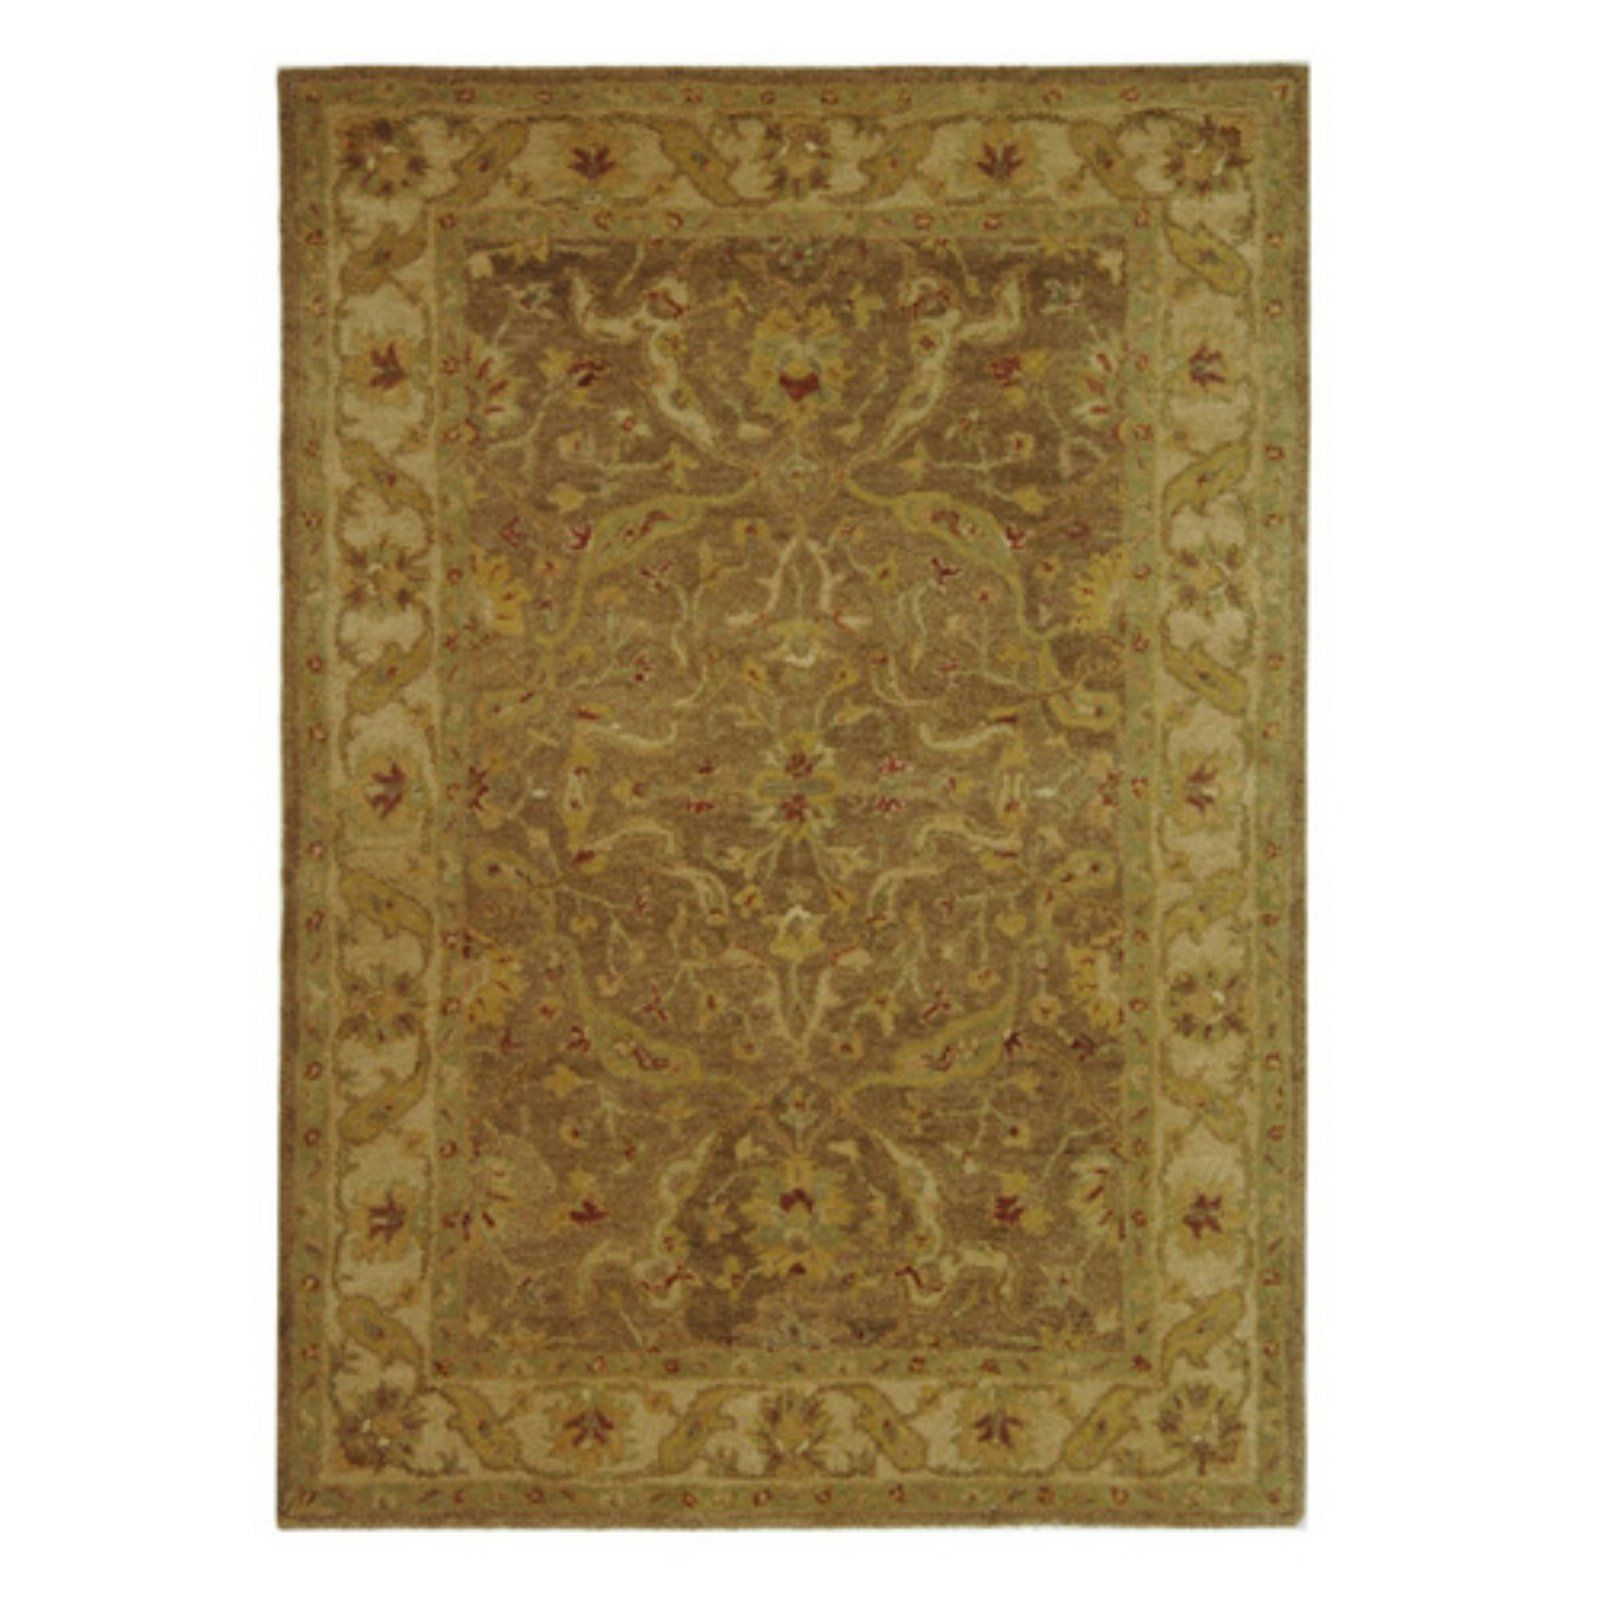 Safavieh Antiquities At311a Area Rug Brown Gold Area Rugs Rugs Colorful Rugs